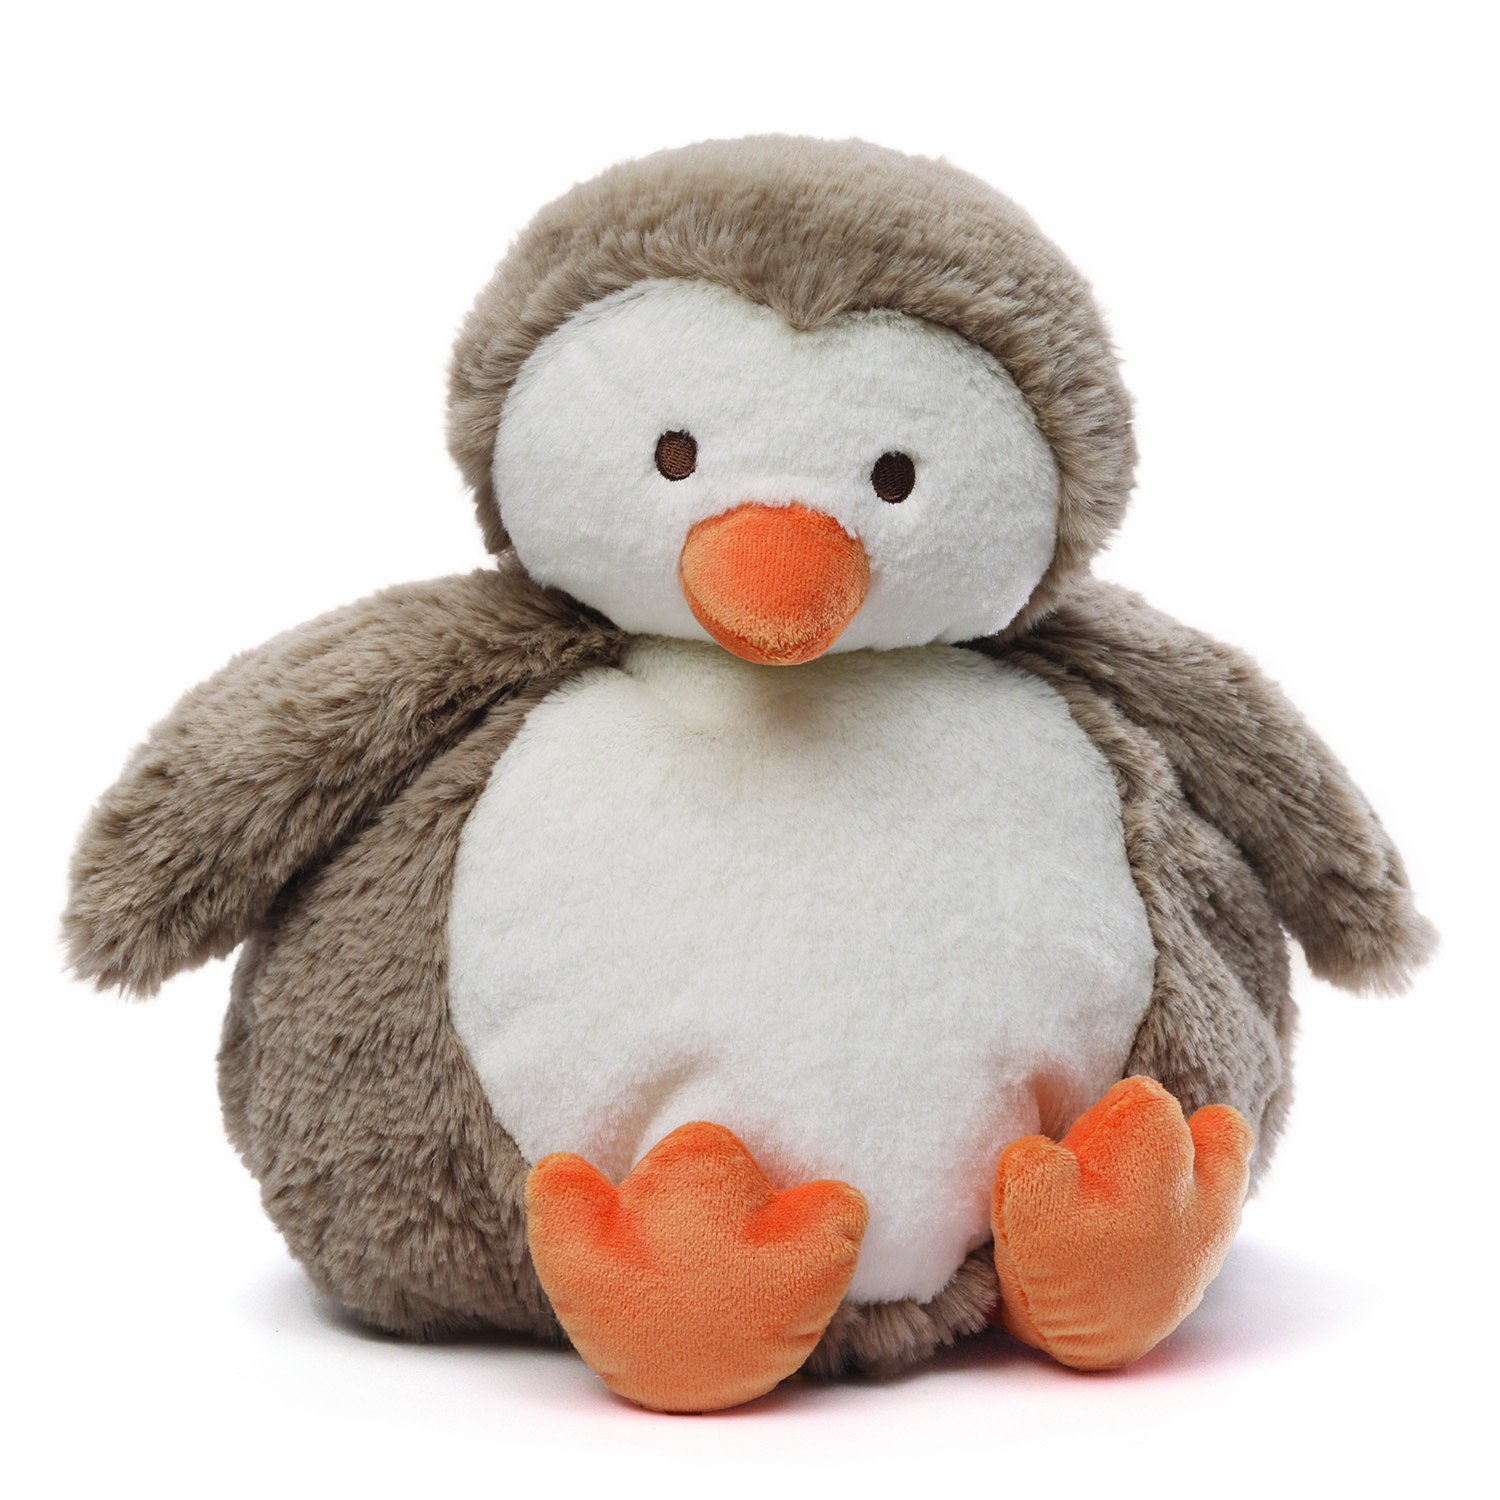 Baby GUND Chub Penguin Stuffed Animal Plush, 10""